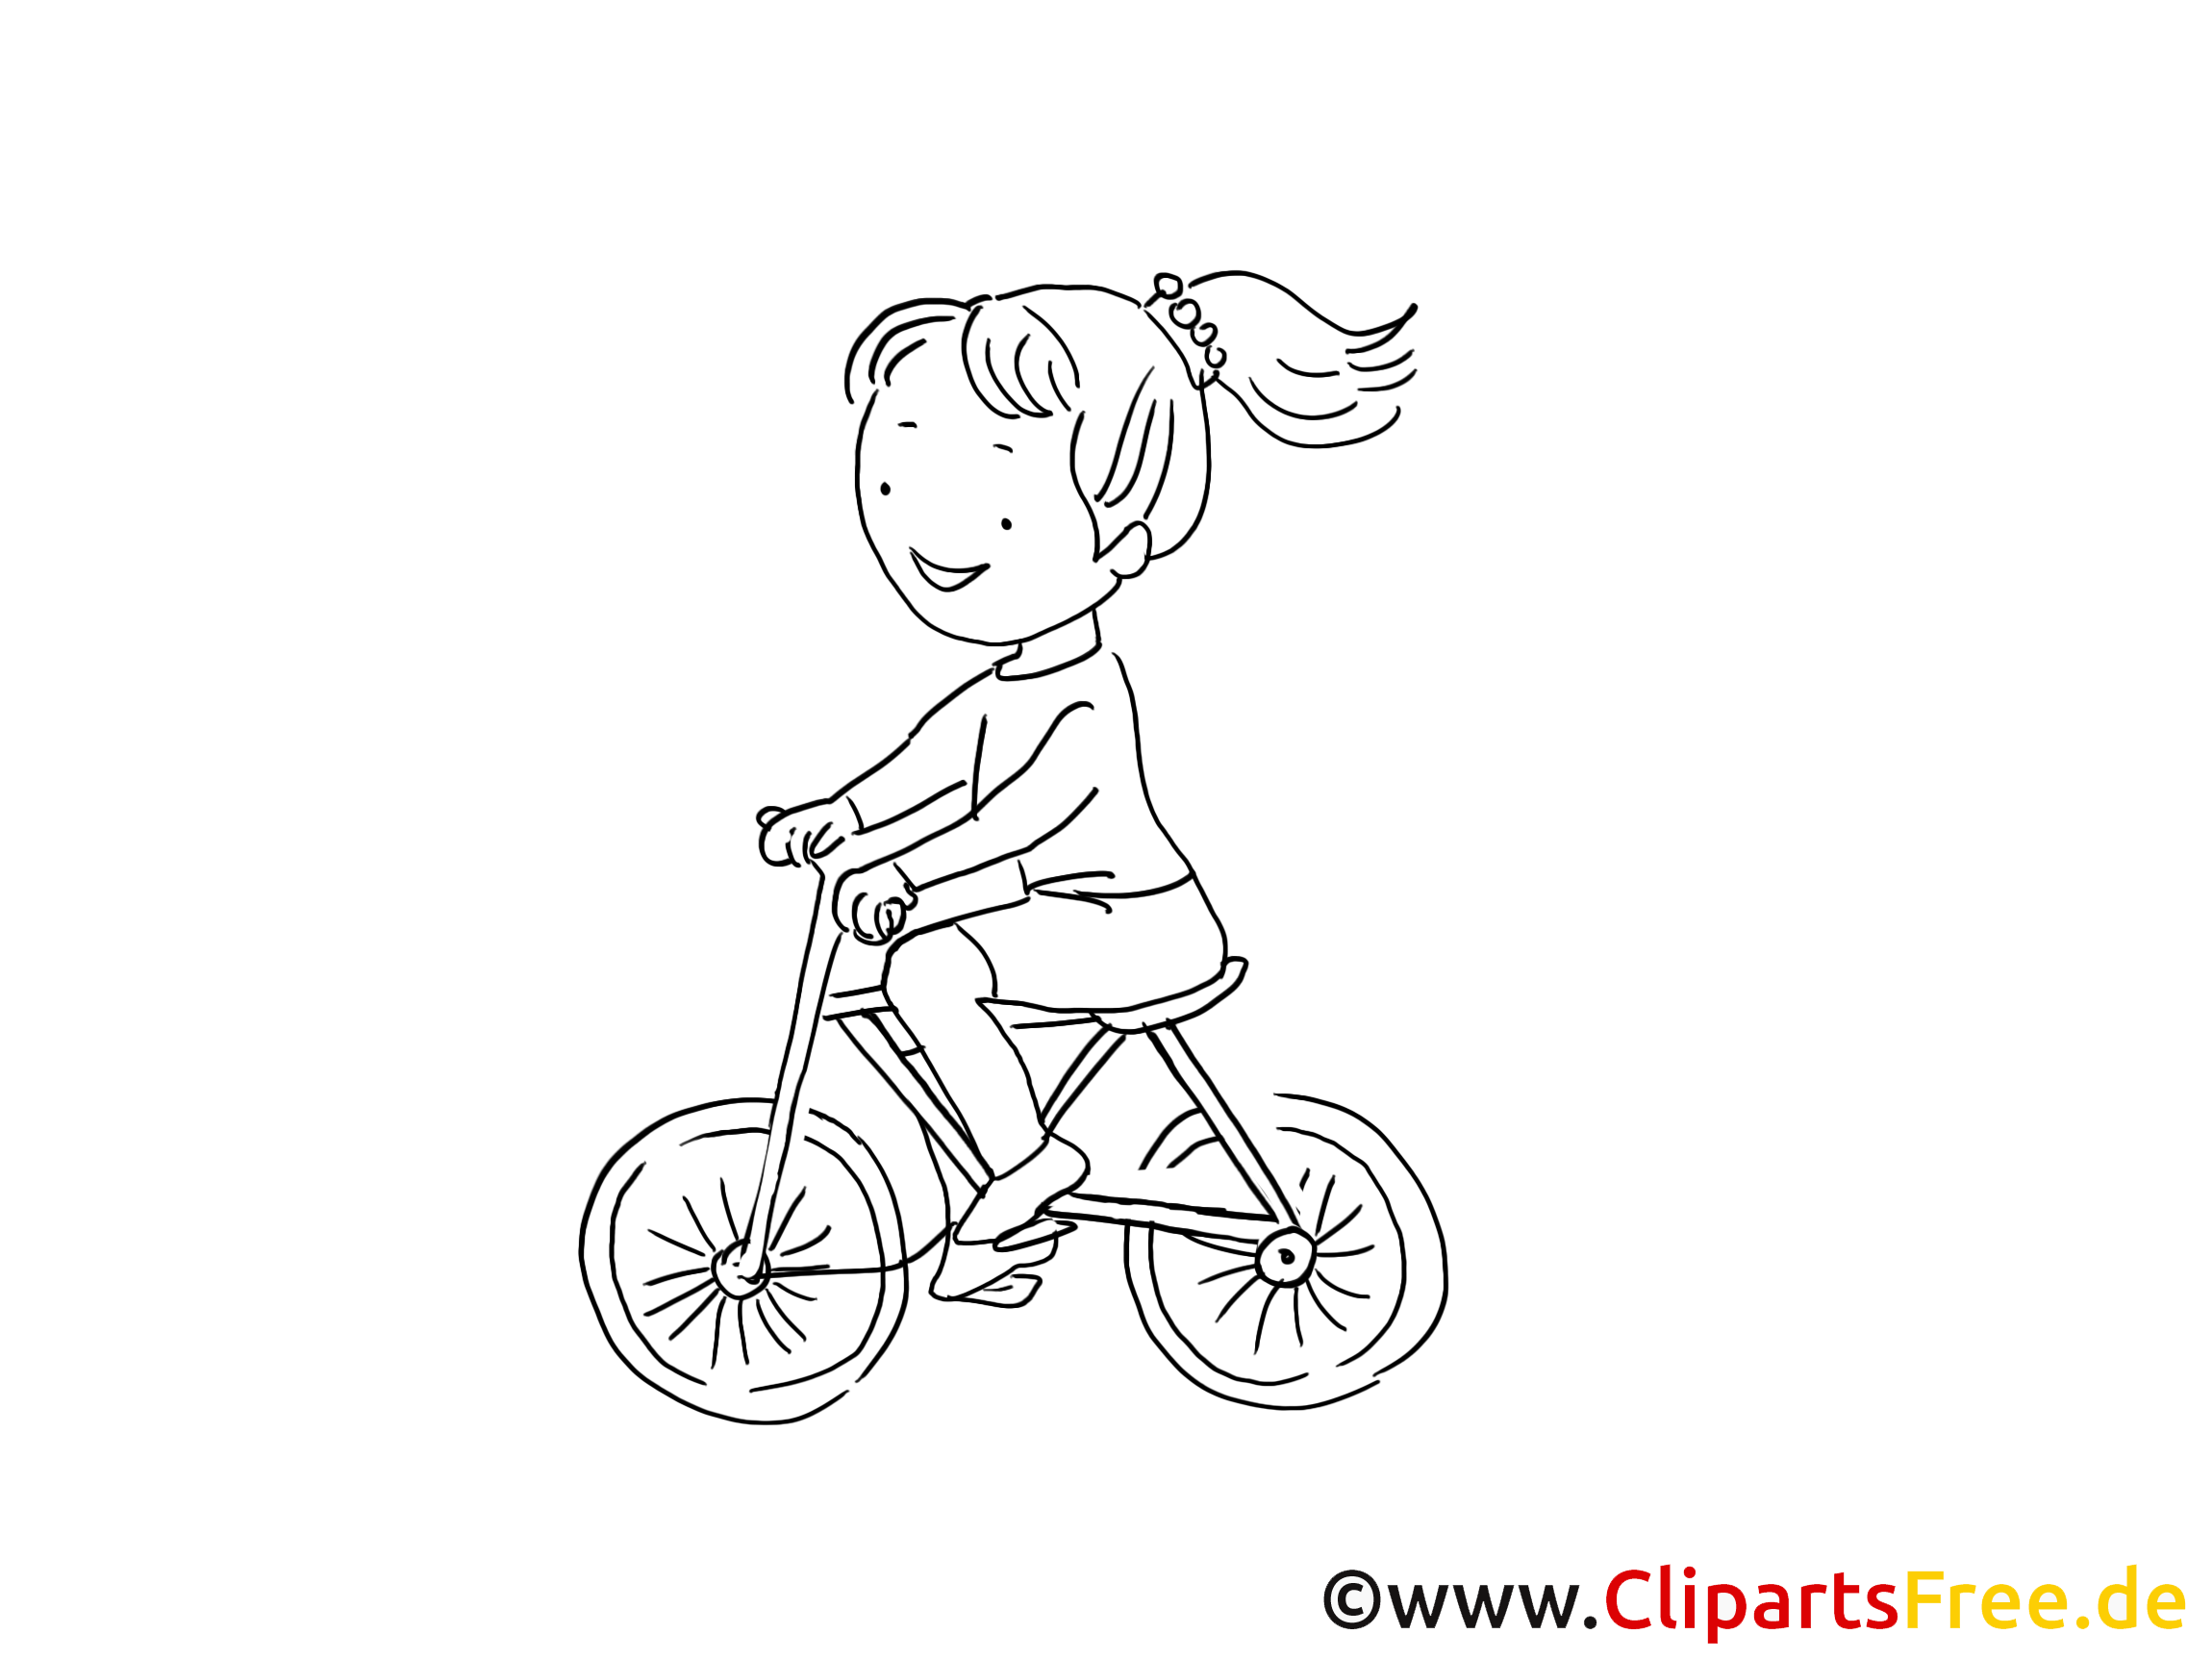 clipart sport velo - photo #25